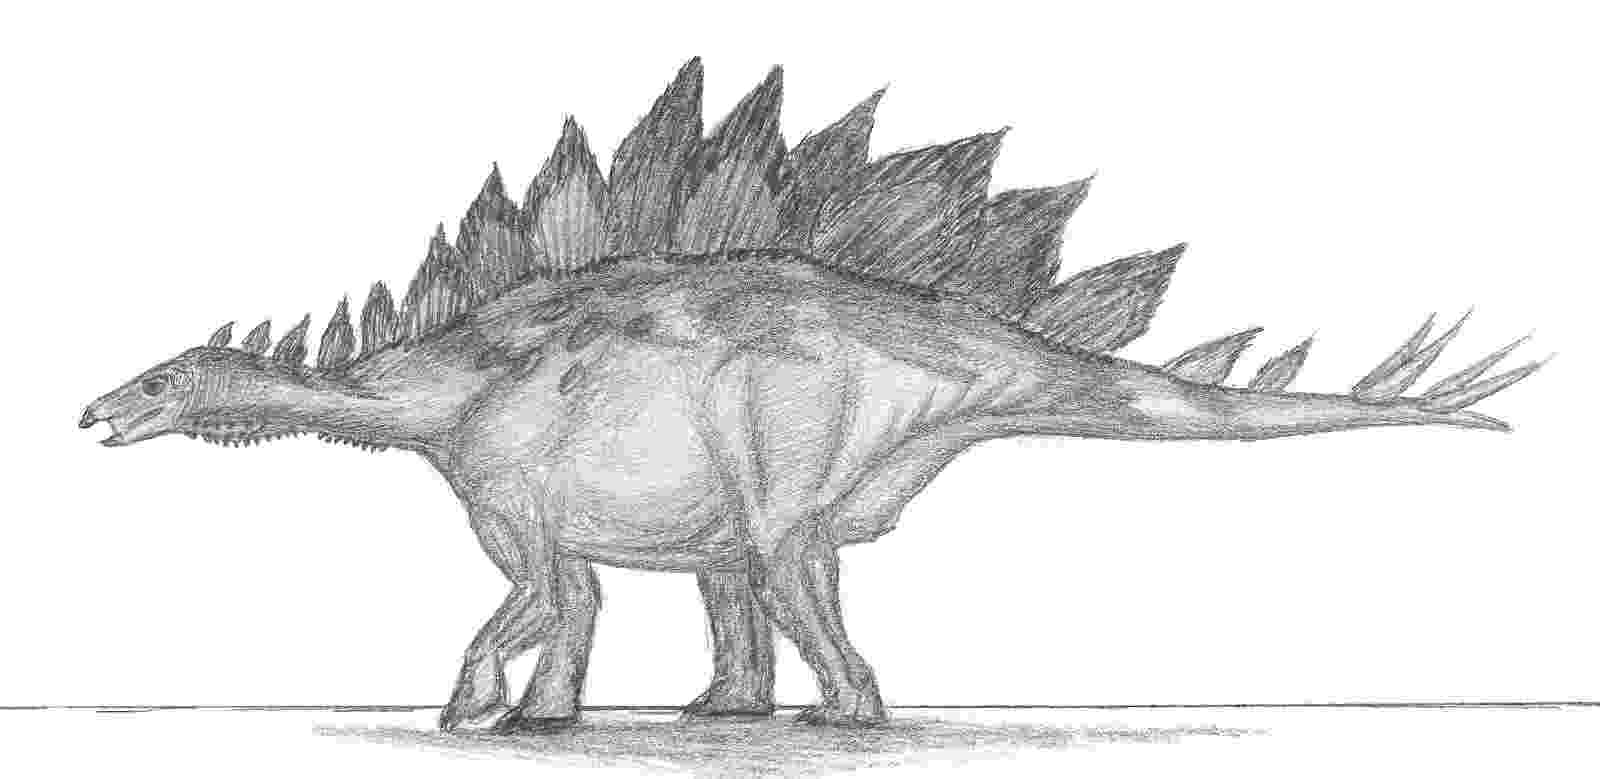 stegosaurus pictures art evolved life39s time capsule january 2013 stegosaurus pictures 1 1